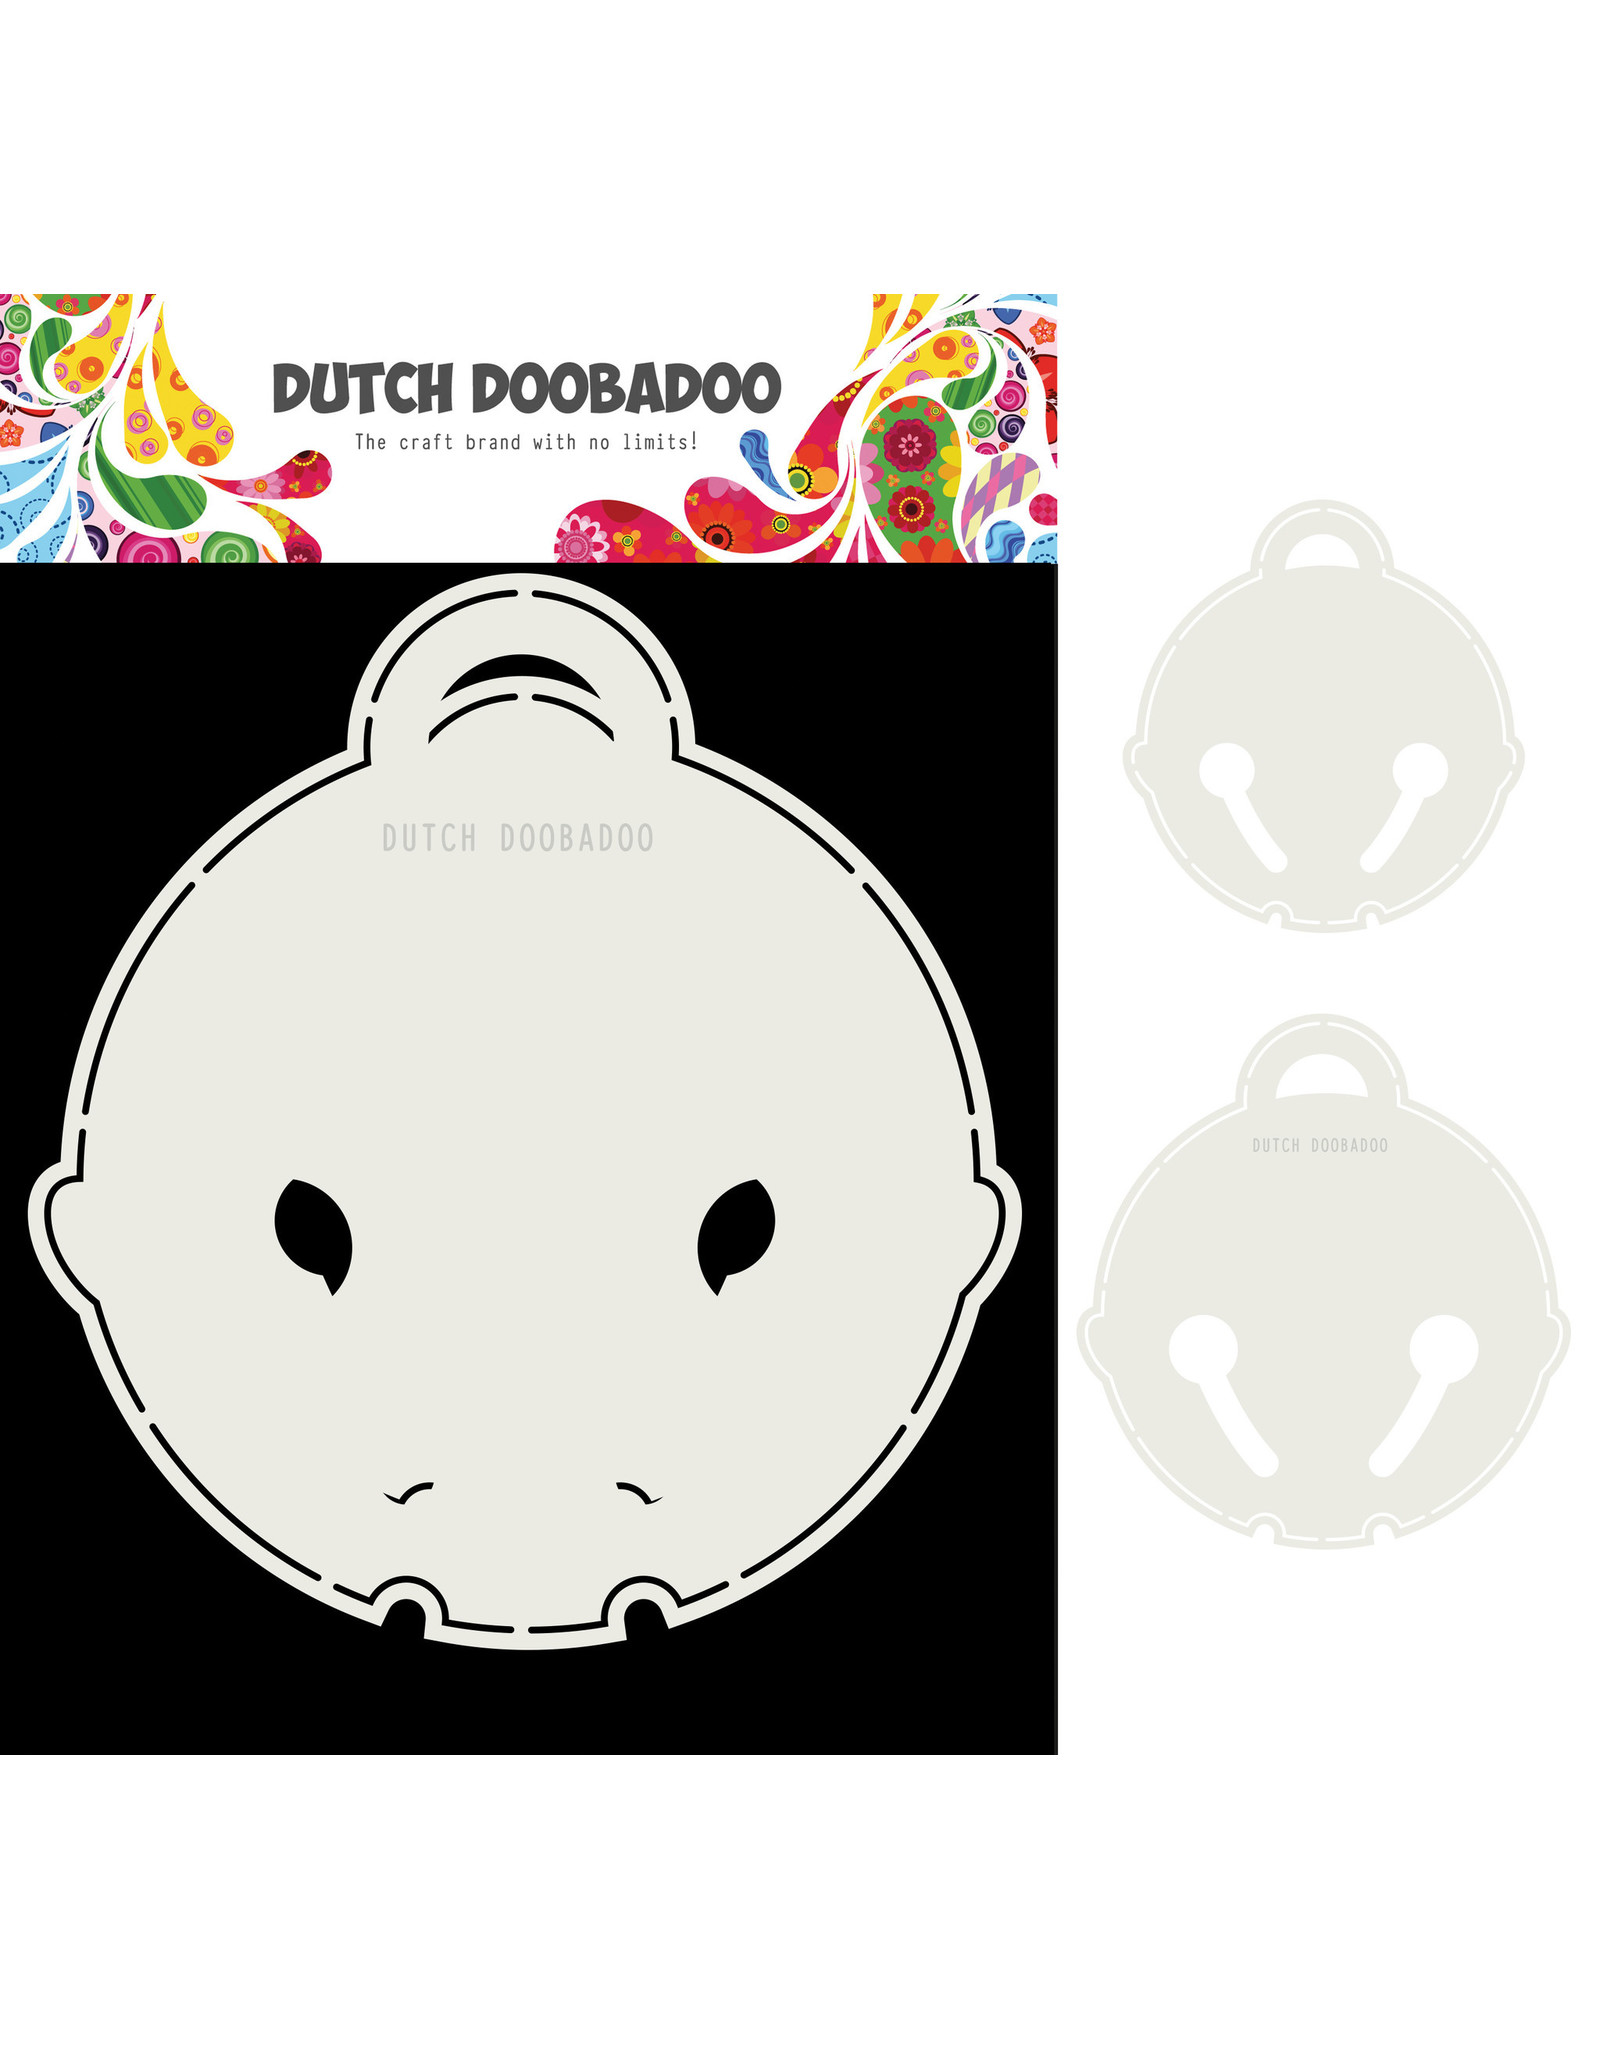 Dutch Doobadoo DDBD Card Art Kattenbel 2 set A5